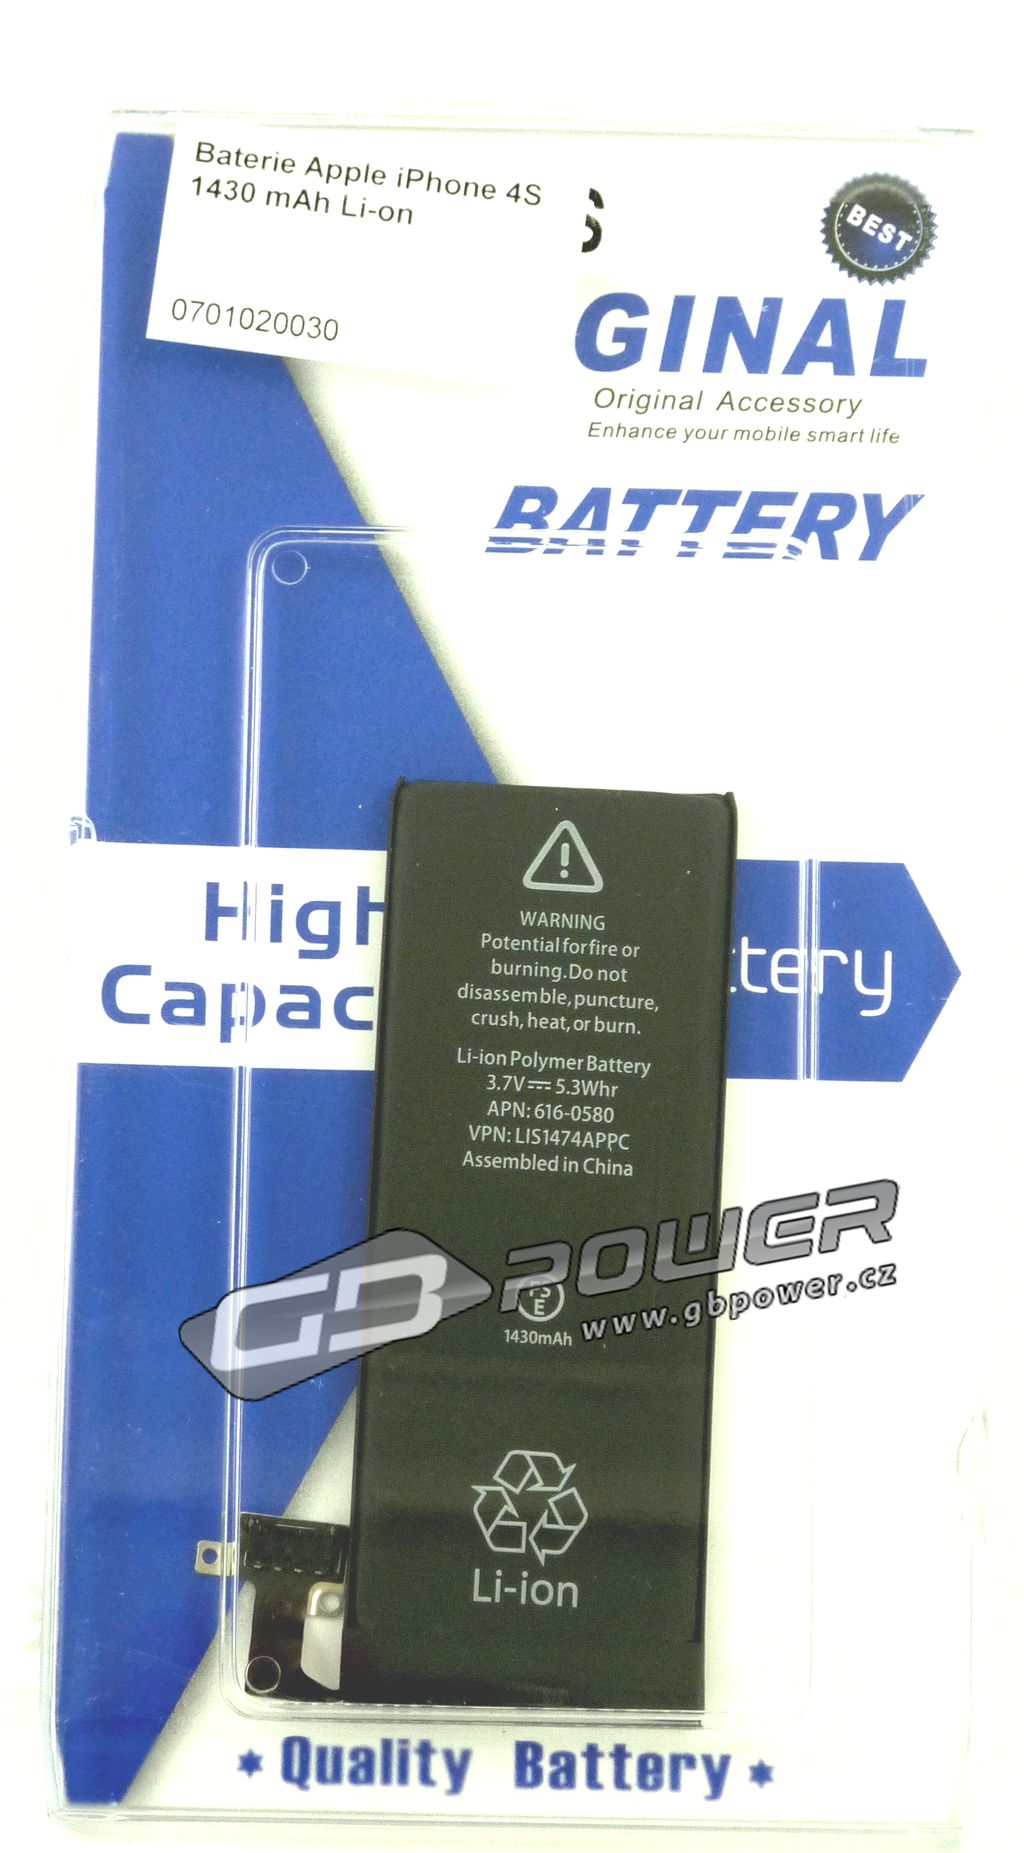 Baterie Apple iPhone 4S 1430 mAh Li-on